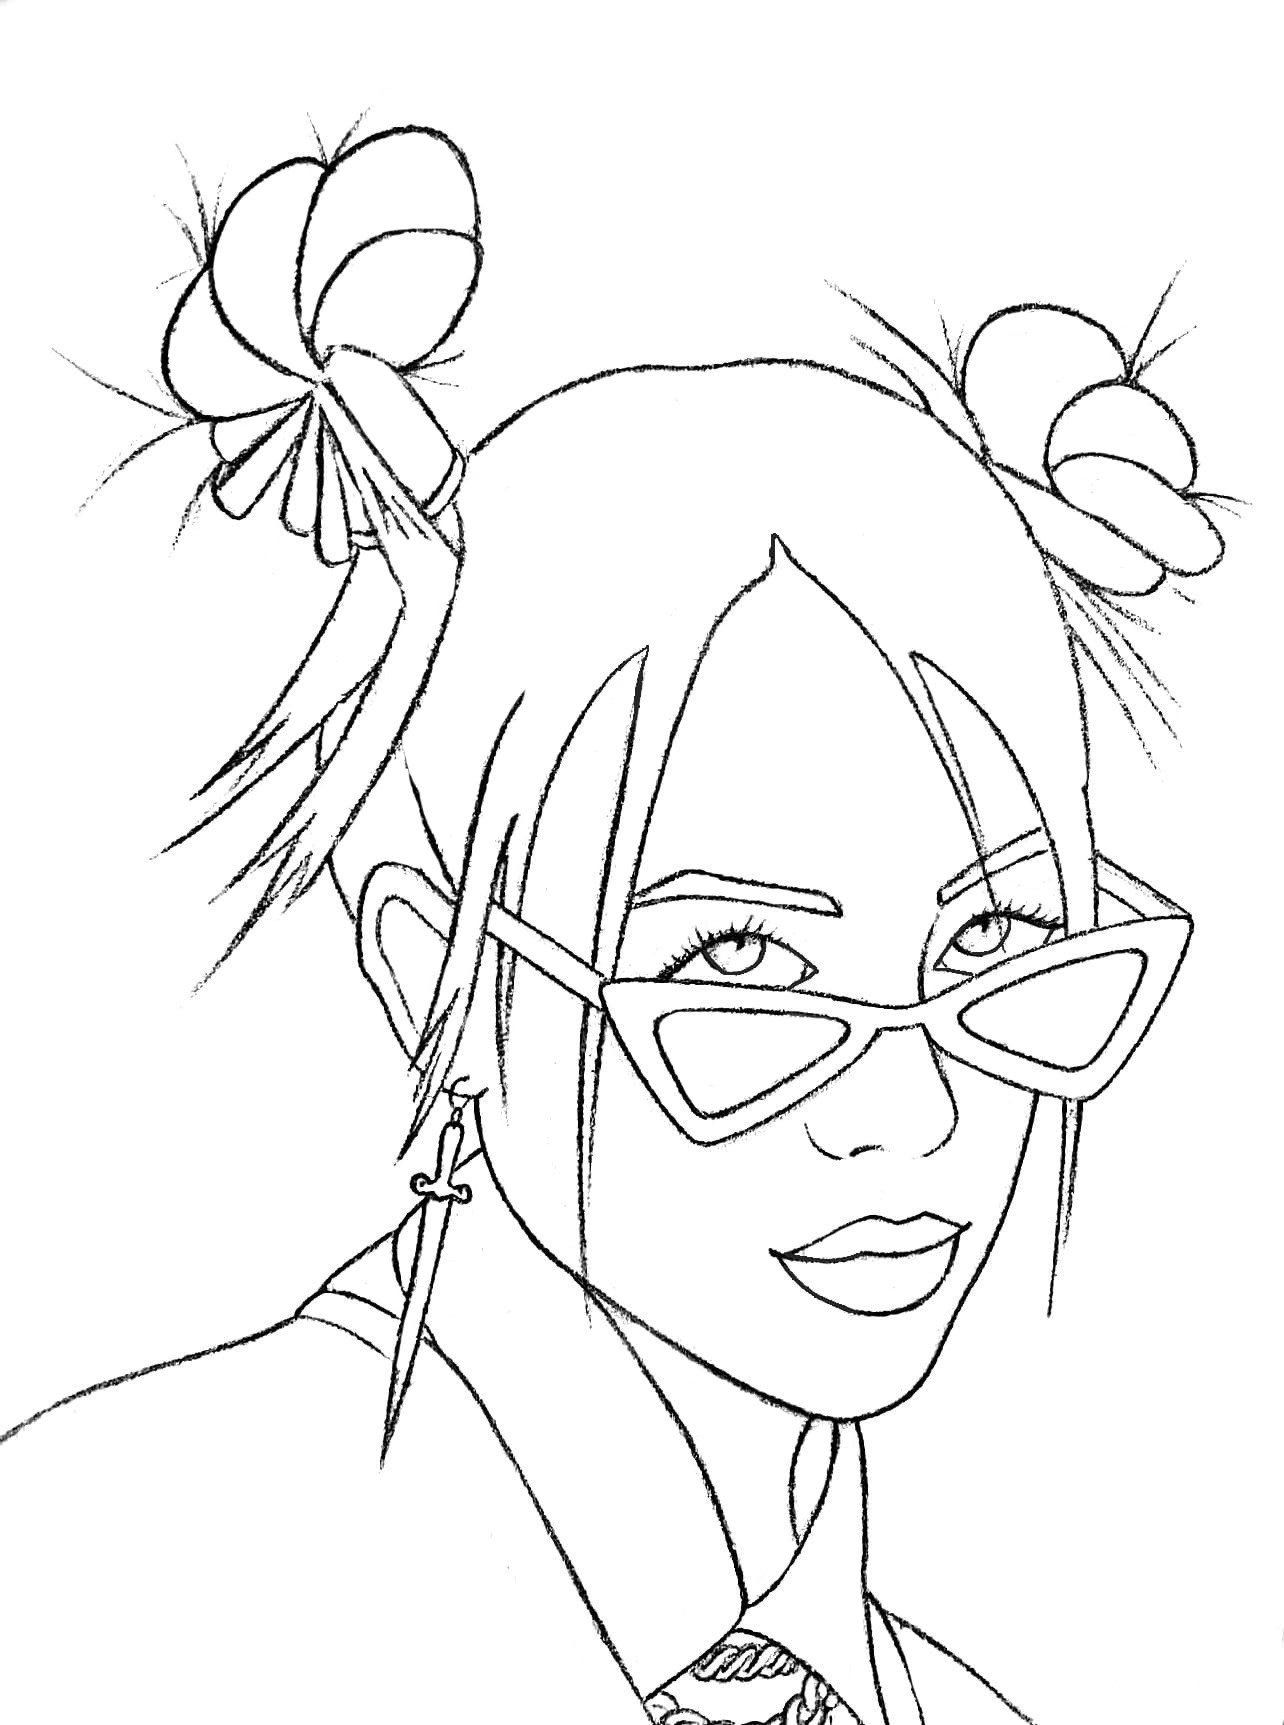 Coloring Pages To Print Out Coloring Pages Billie Eilish Print Out Talented Singer Coloring Pages Drawings Monster Truck Coloring Pages